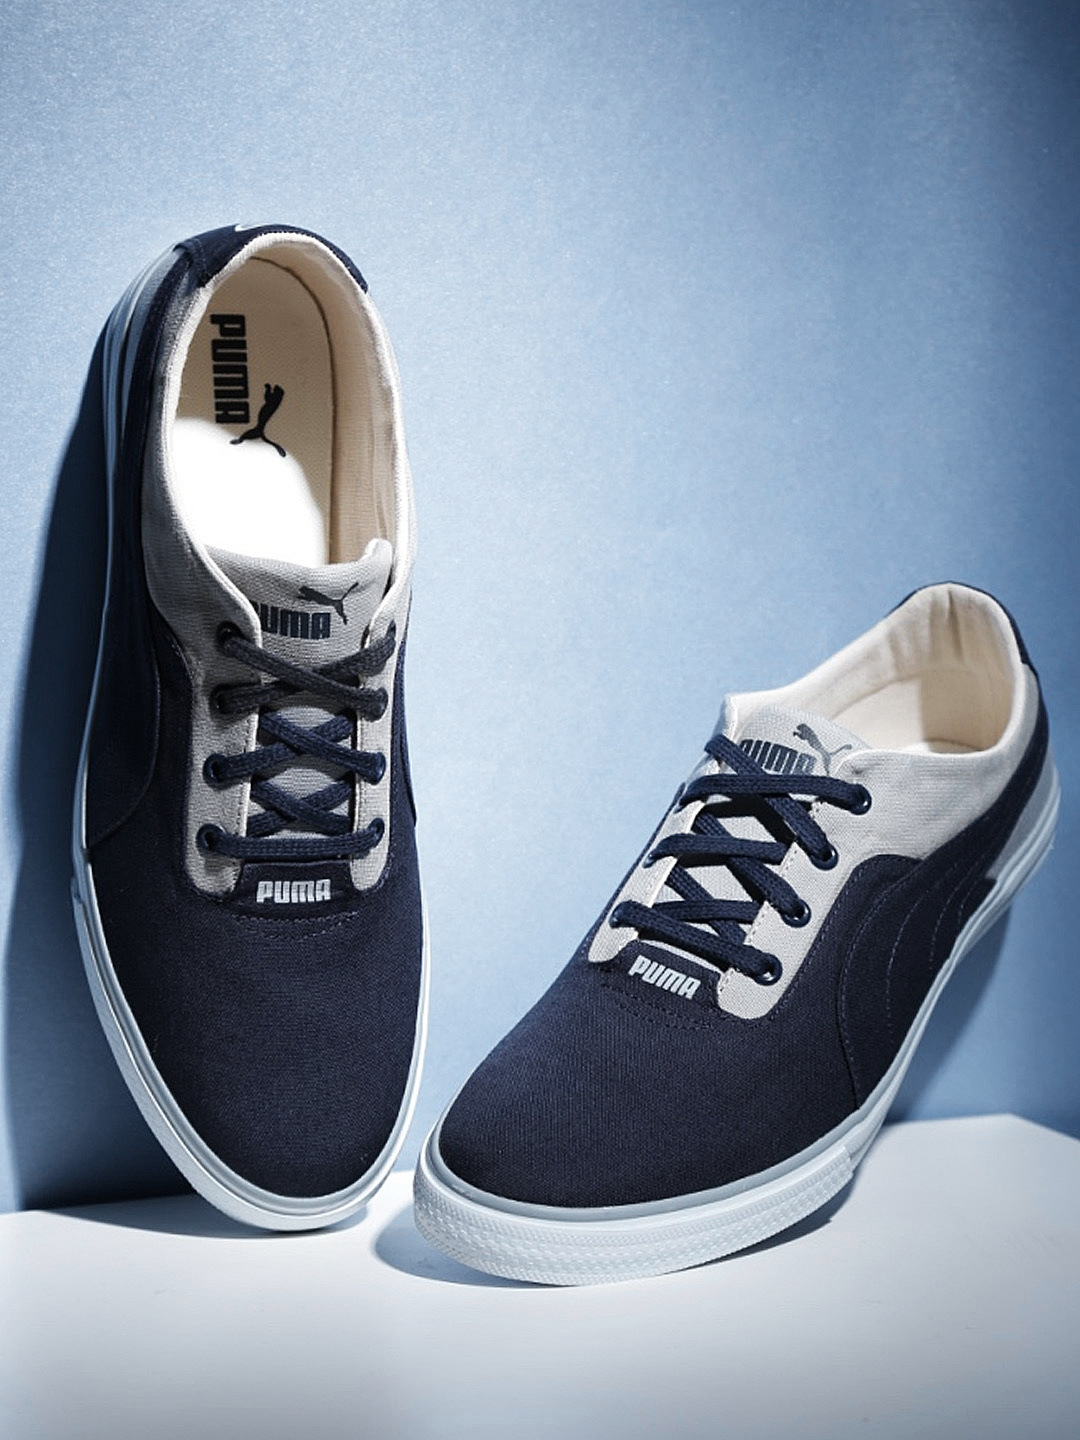 fresh styles luxuriant in design moderate cost PUMA Unisex Navy & Grey Slyde IDP Sneakers